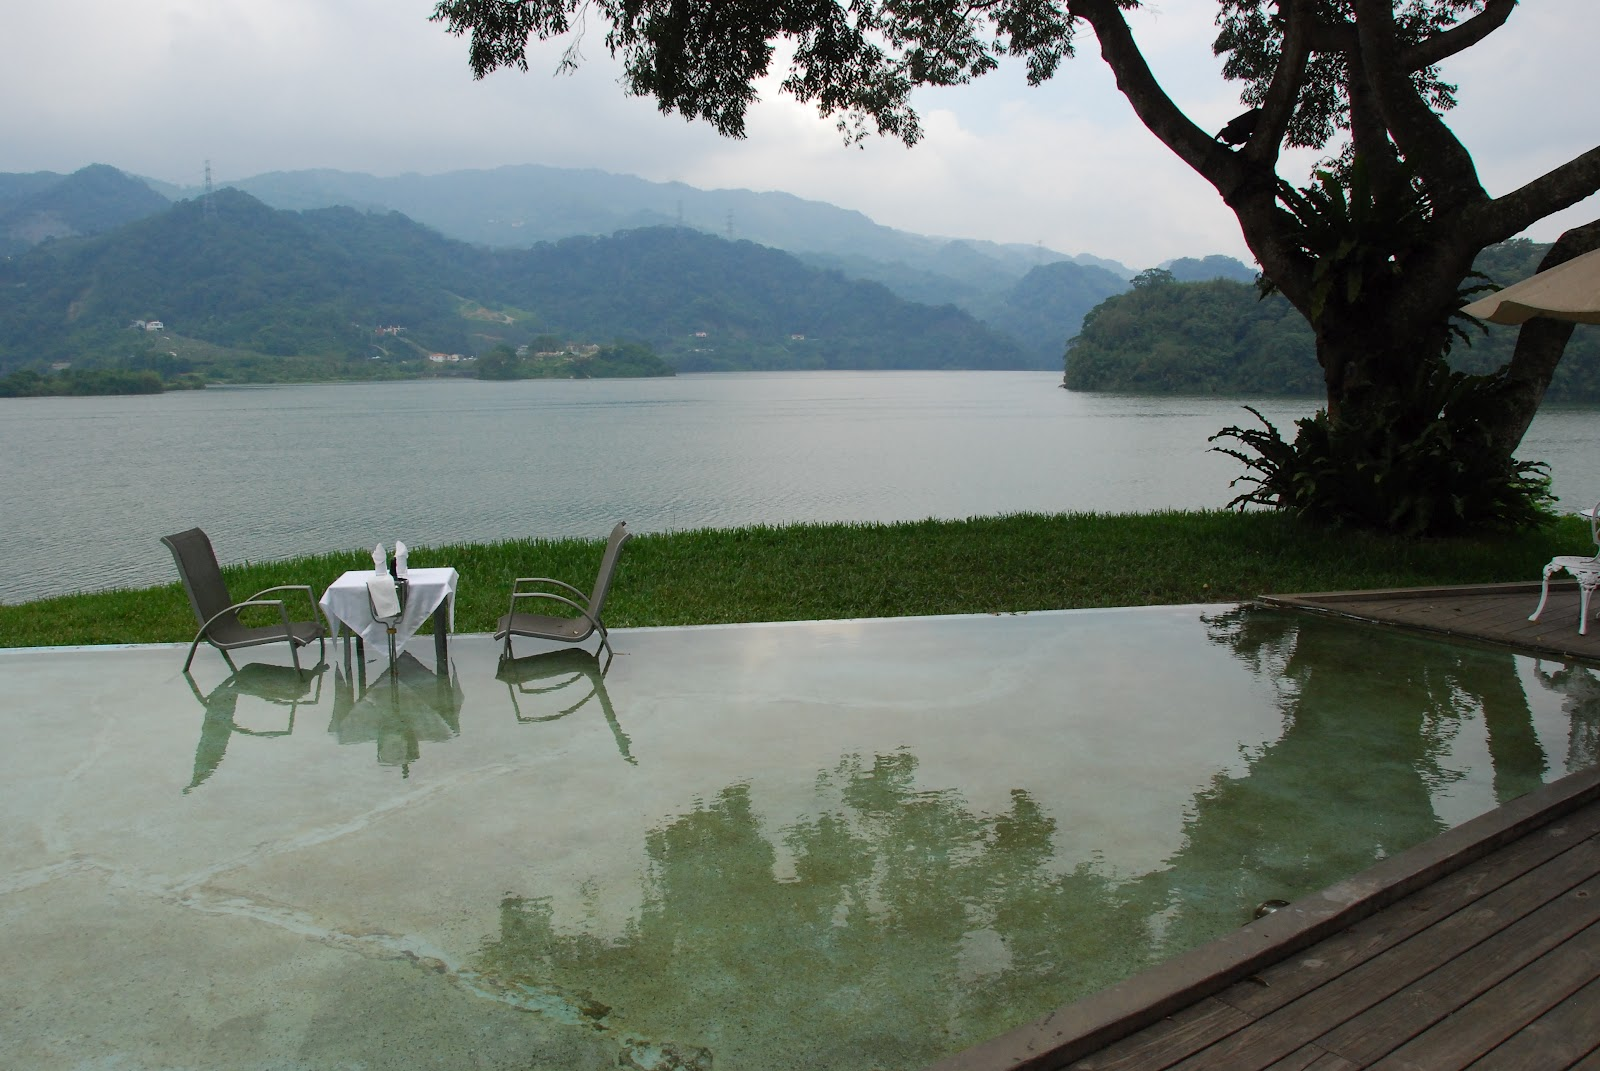 Mookoo's Home (木咕子的家): 勻淨湖 (上) -- Where We Really Enjoyed Ourselves